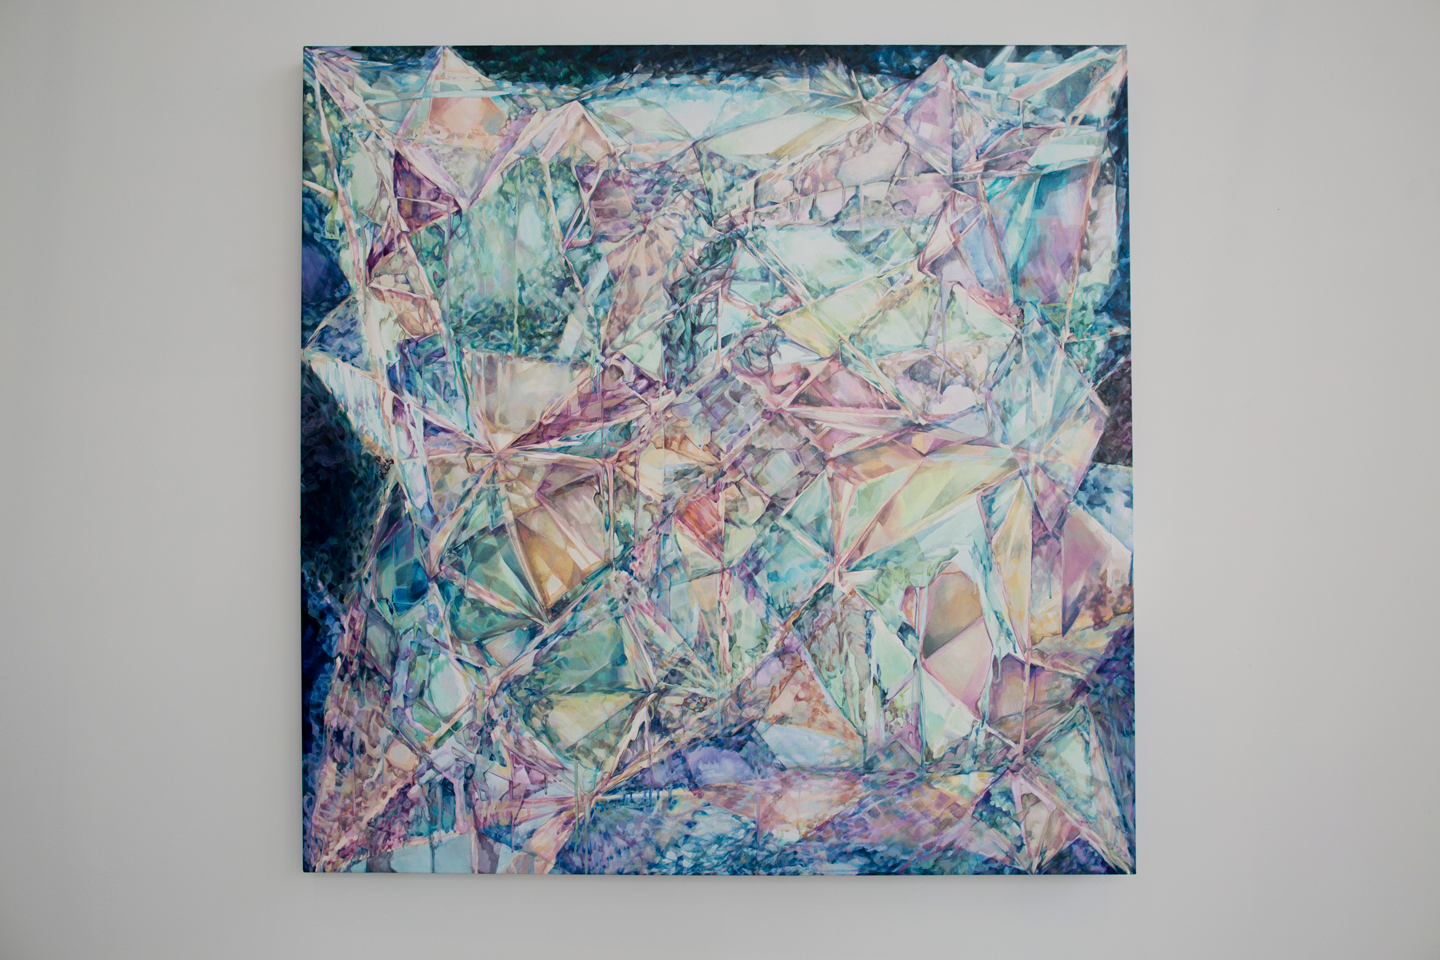 'In- + definitive,' acrylic on canvas by Heather Vida-Moore.